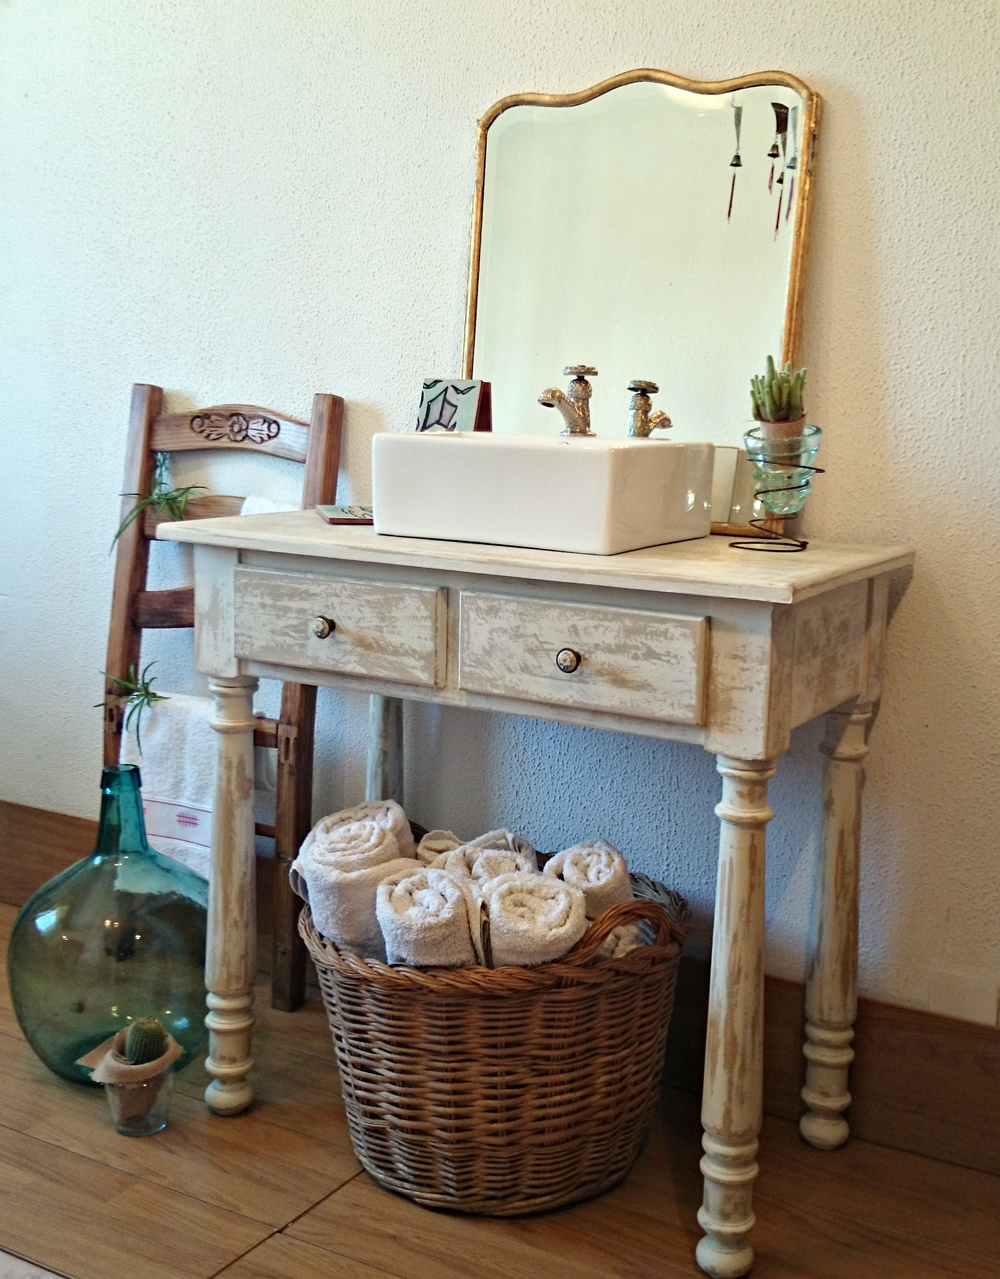 Decoracion Baño Estilo Antiguo:Mueble de baño decapado en blanco antiguo